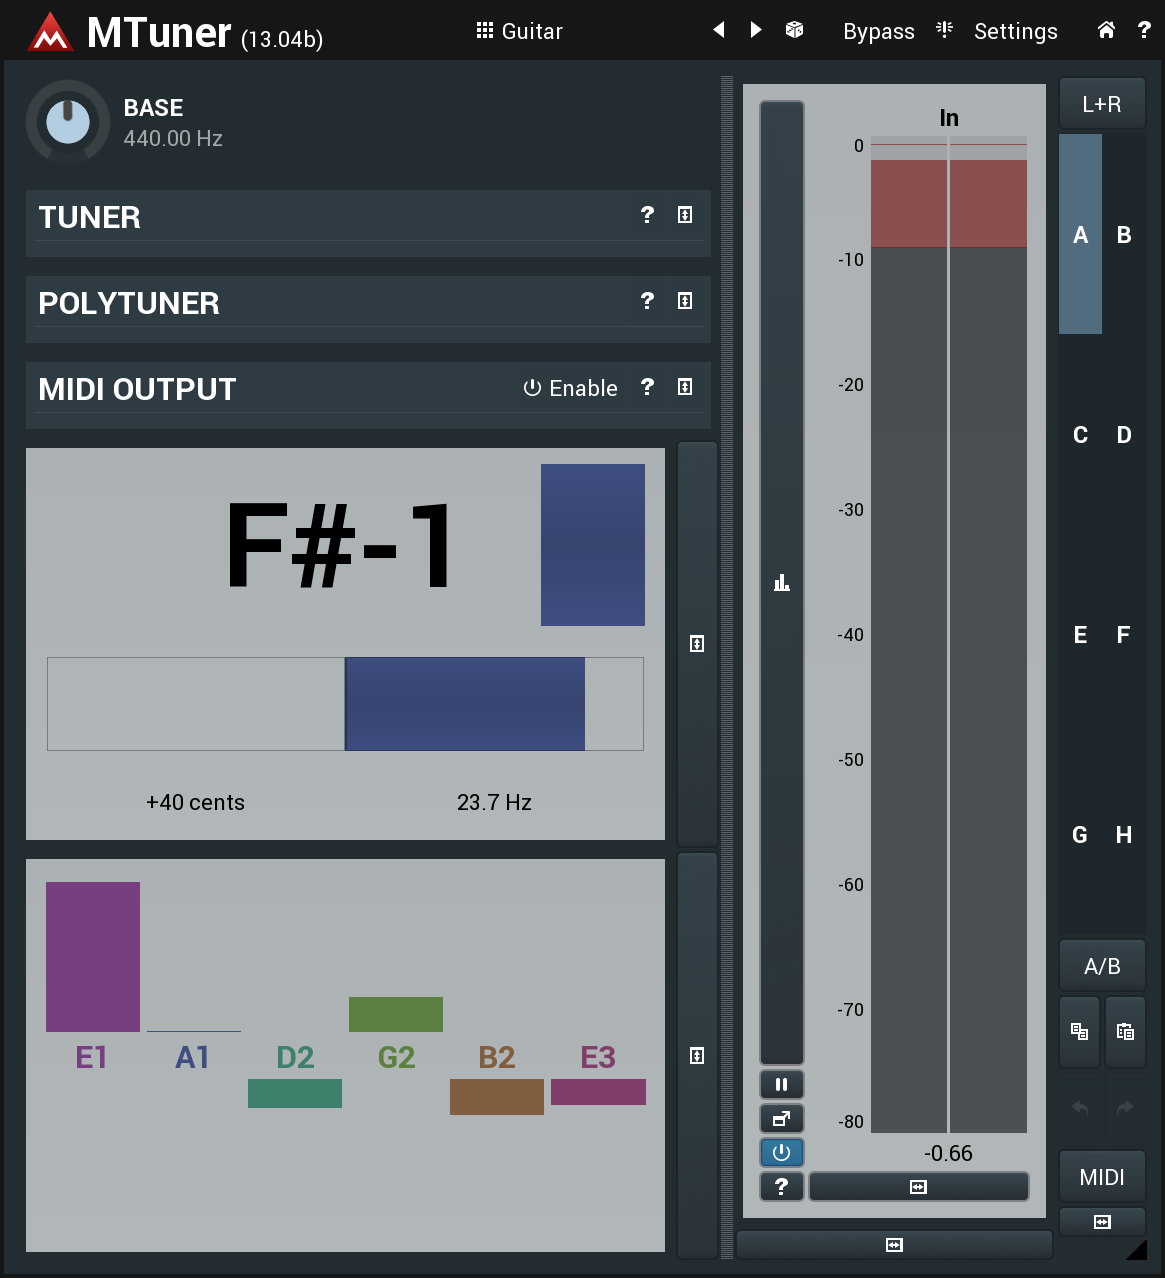 MTuner free tuner by MeldaProduction